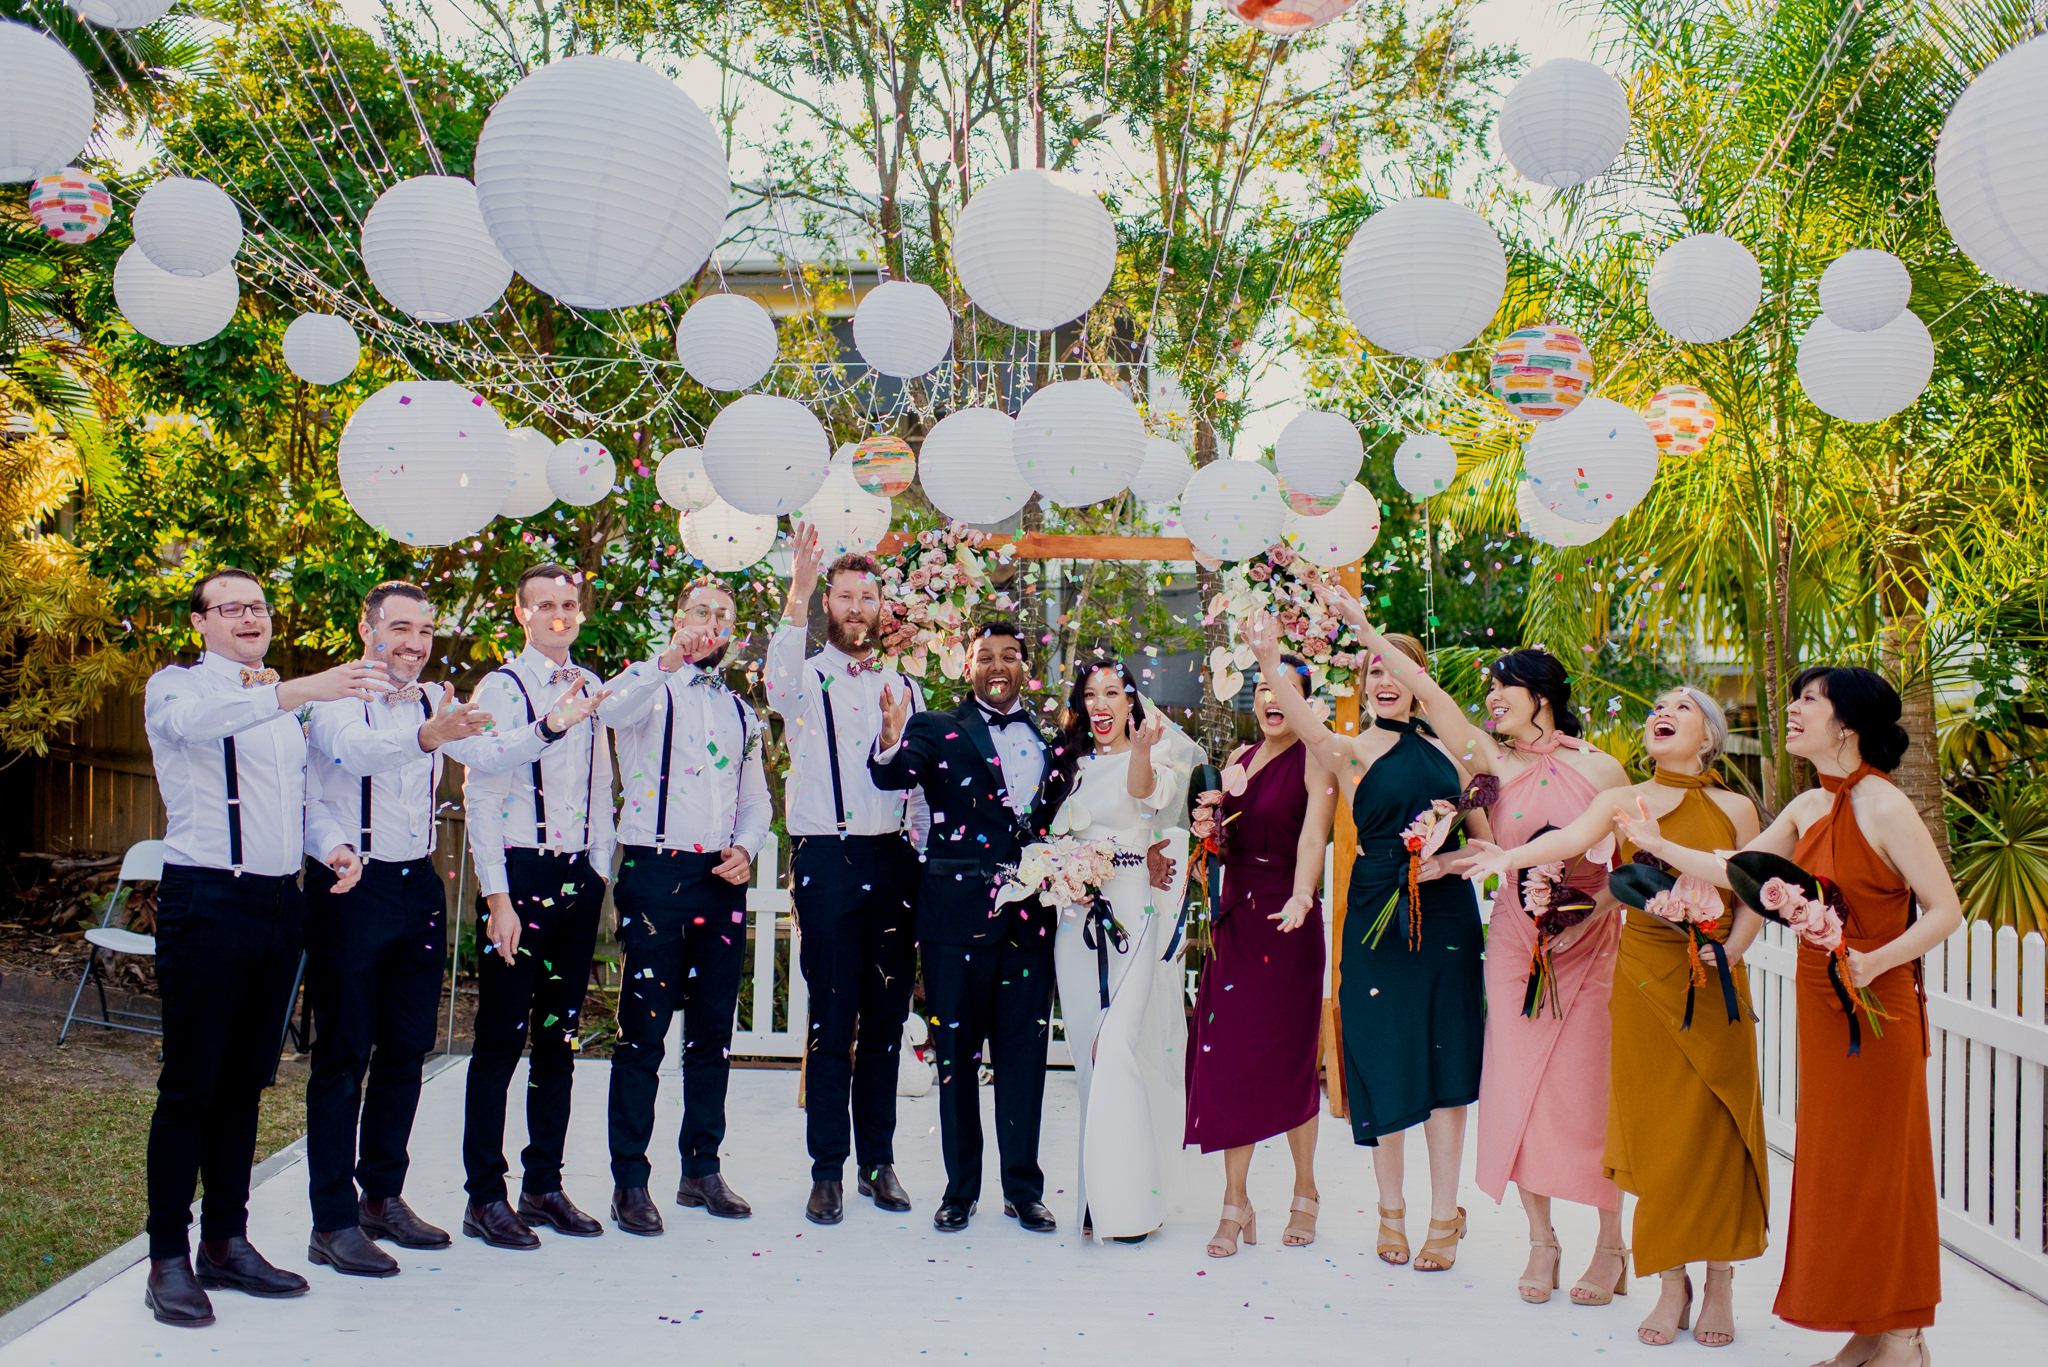 Bridal party smiles as they throw colourful confetti in the air